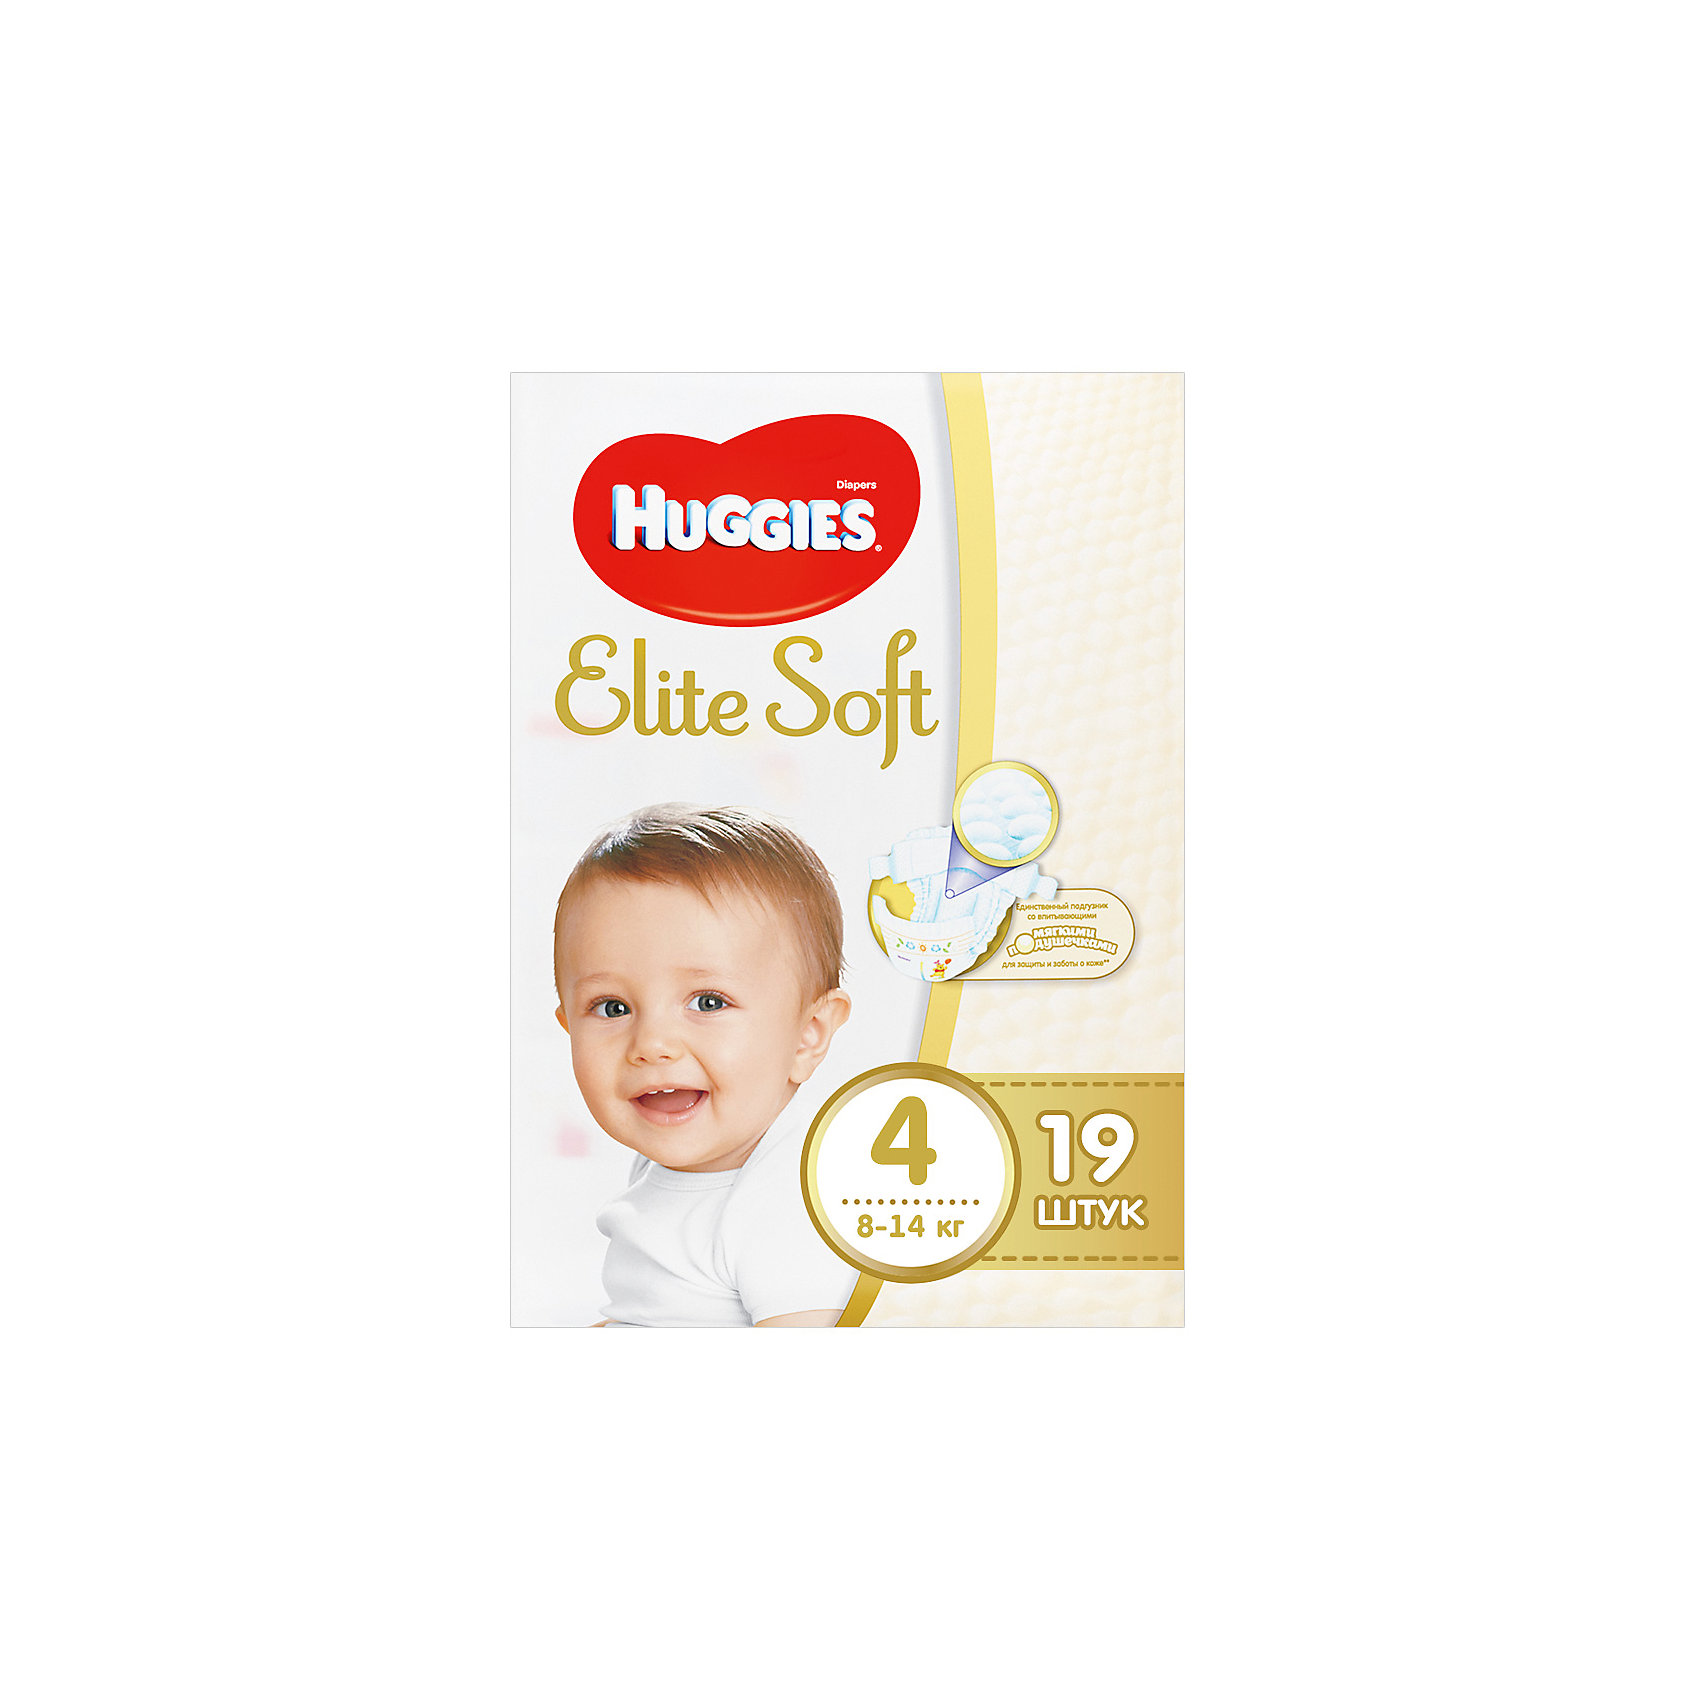 Подгузники Huggies Elite Soft 4, 8-14 кг, 19 шт.